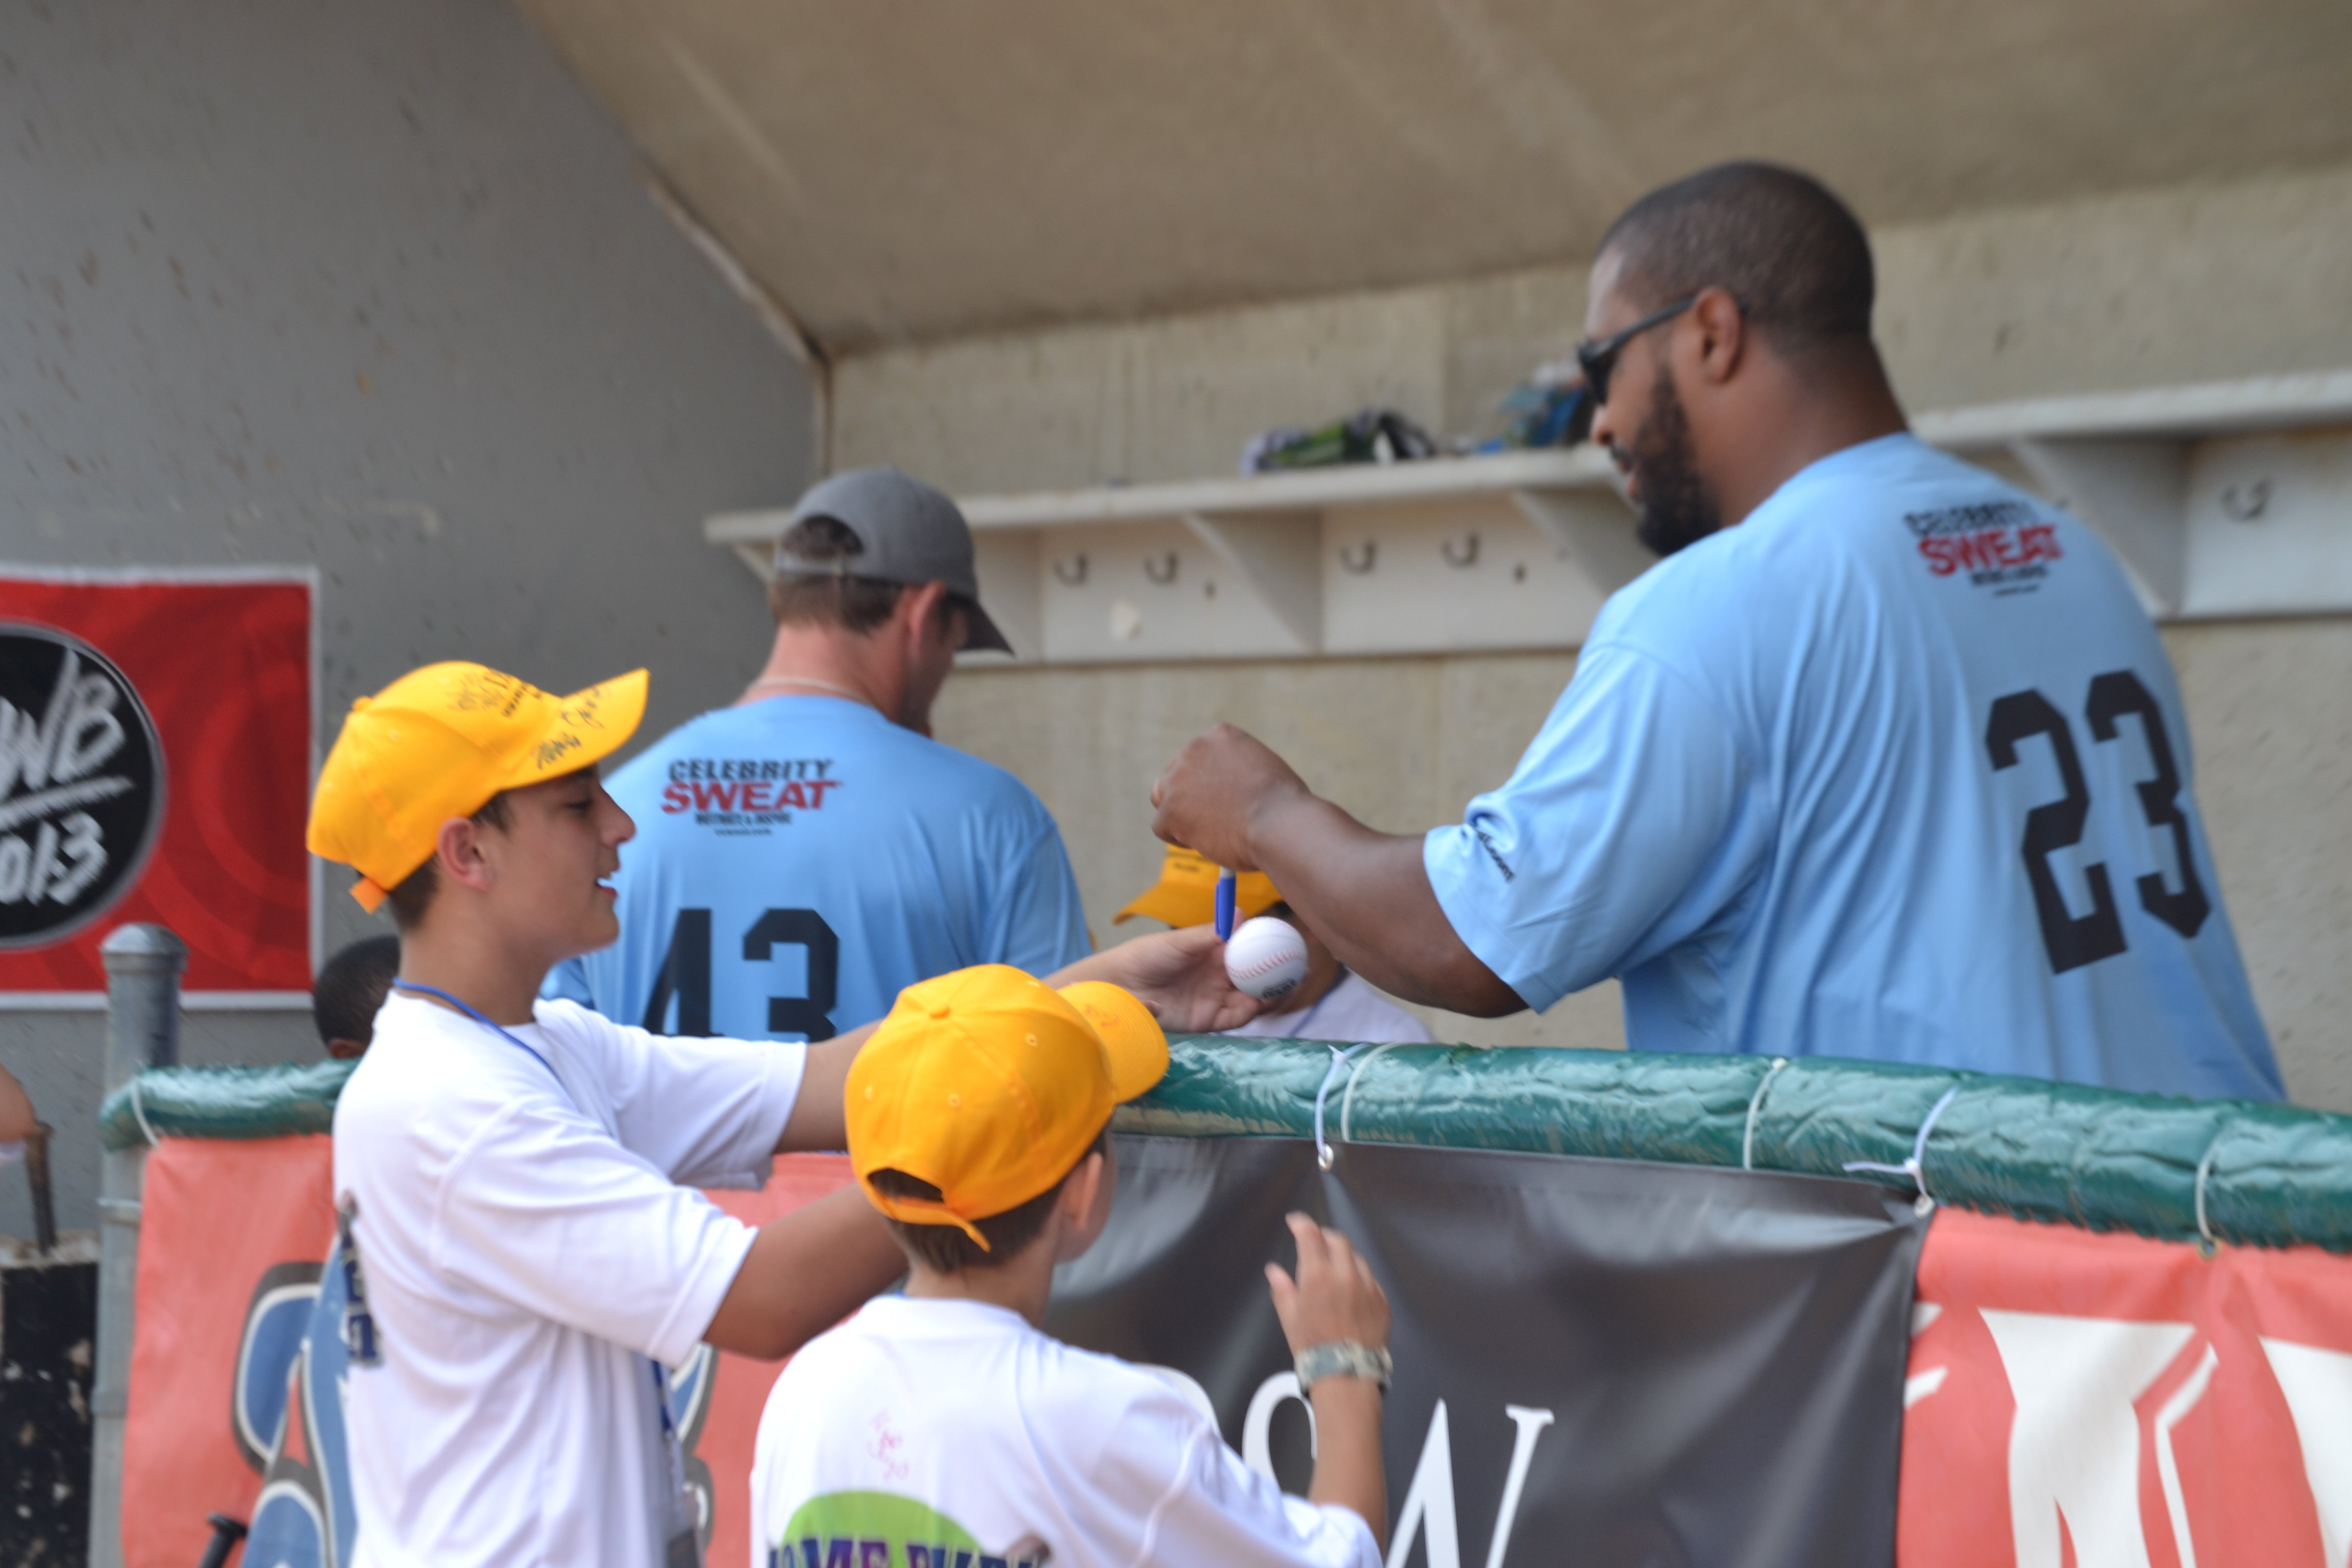 Anthony Gresafe (left) gets autograph from Daunte Culpepper  (no. 23, right).